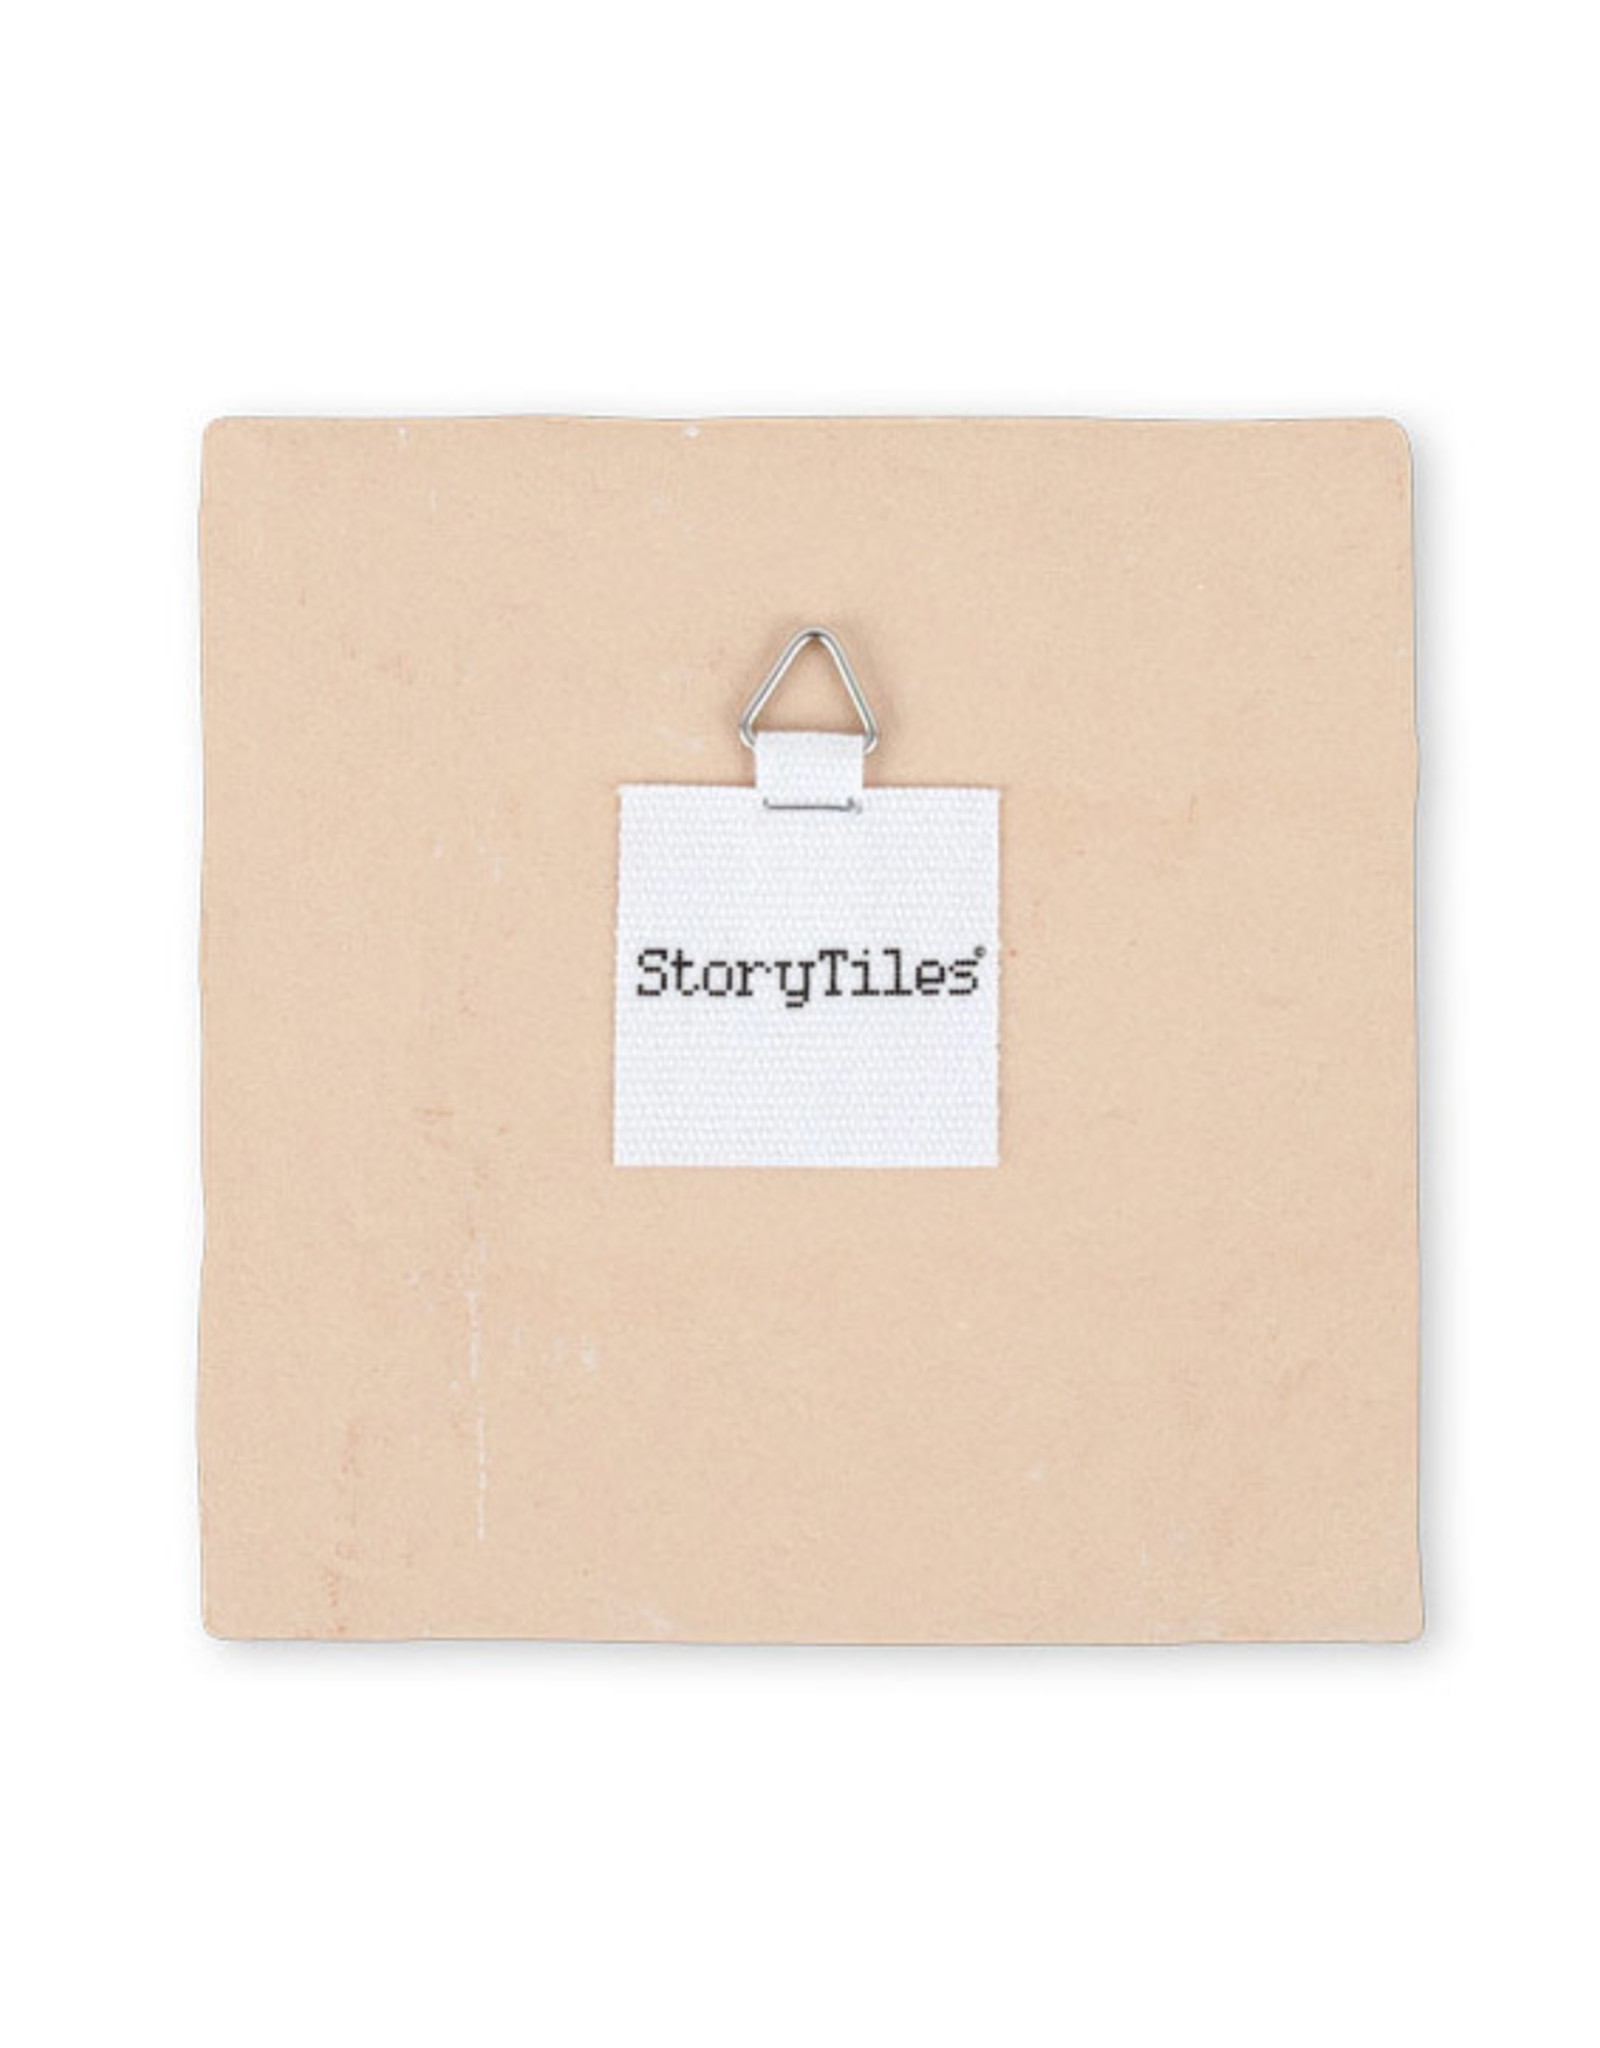 "StoryTiles ""a leap of faith"" Tile"